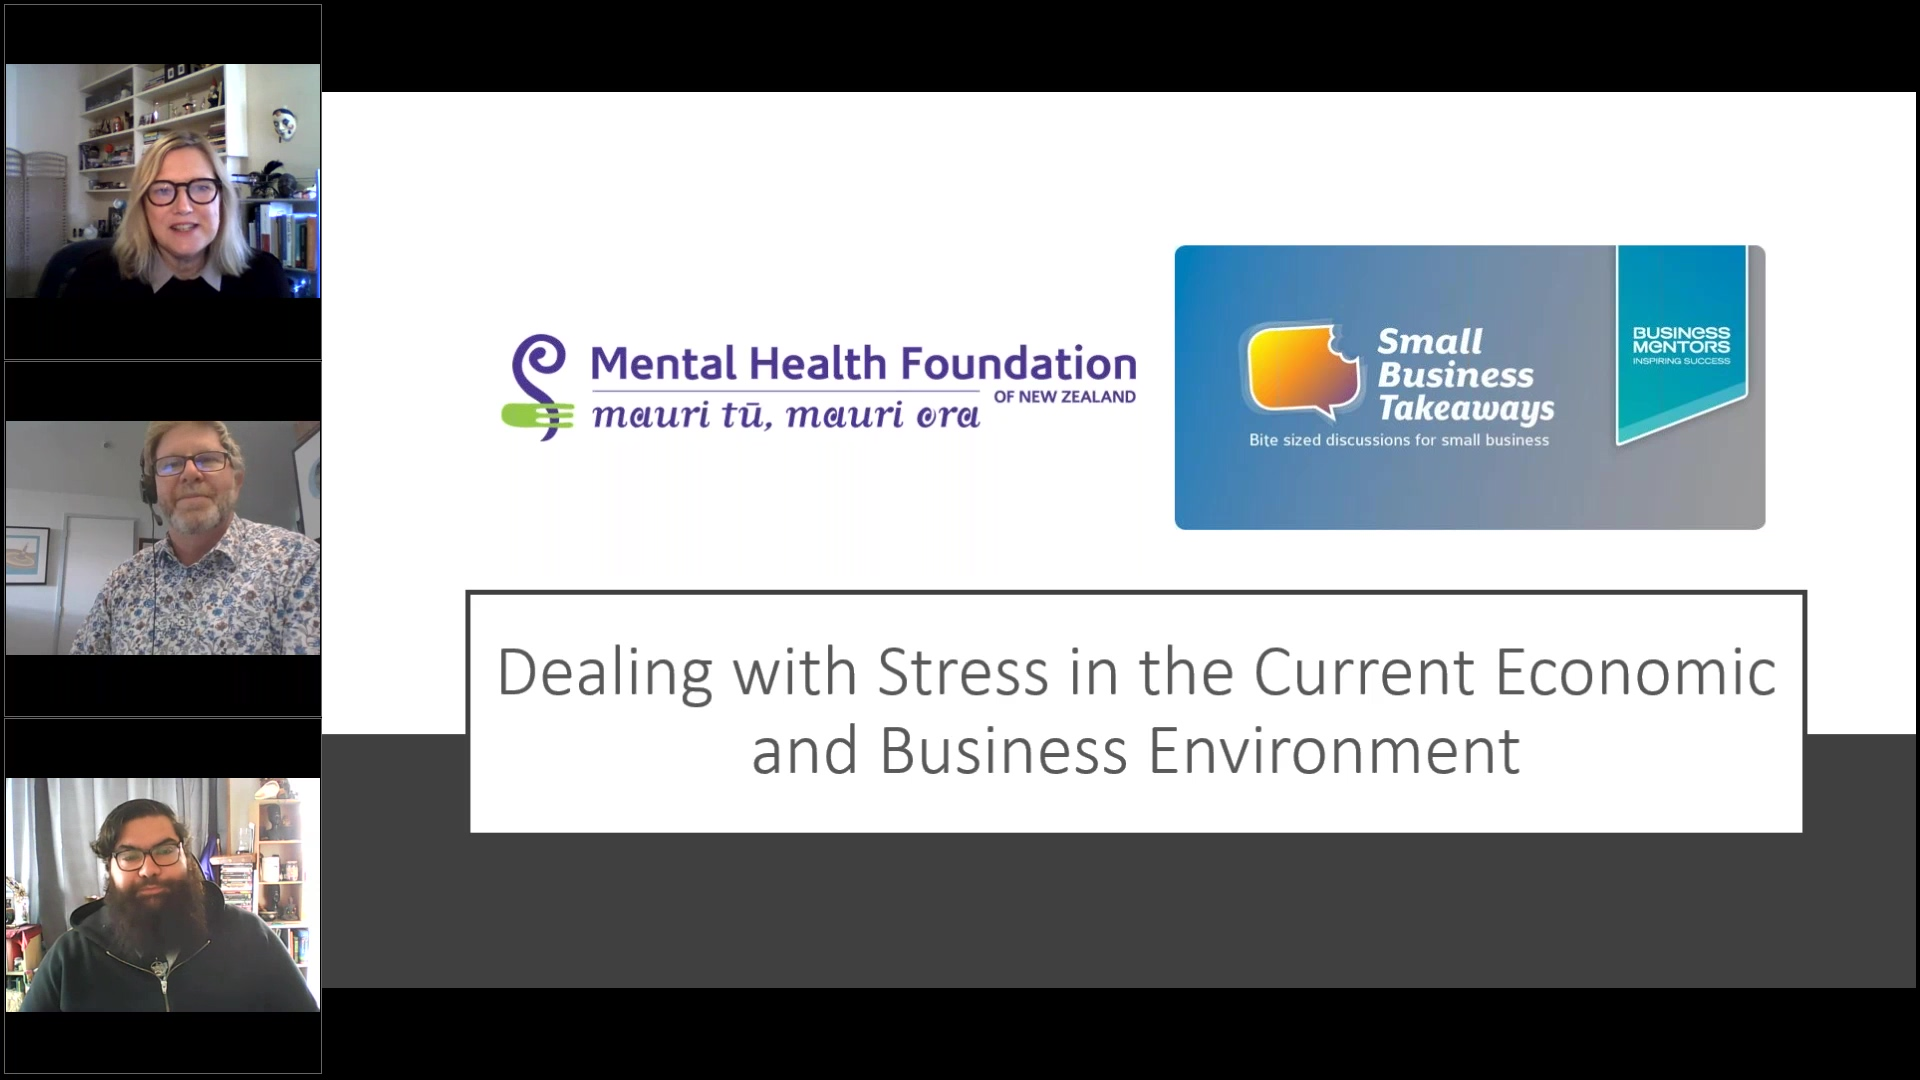 Business Mentors New Zealand_ Dealing with Stress in the Current Economic and Business Environment